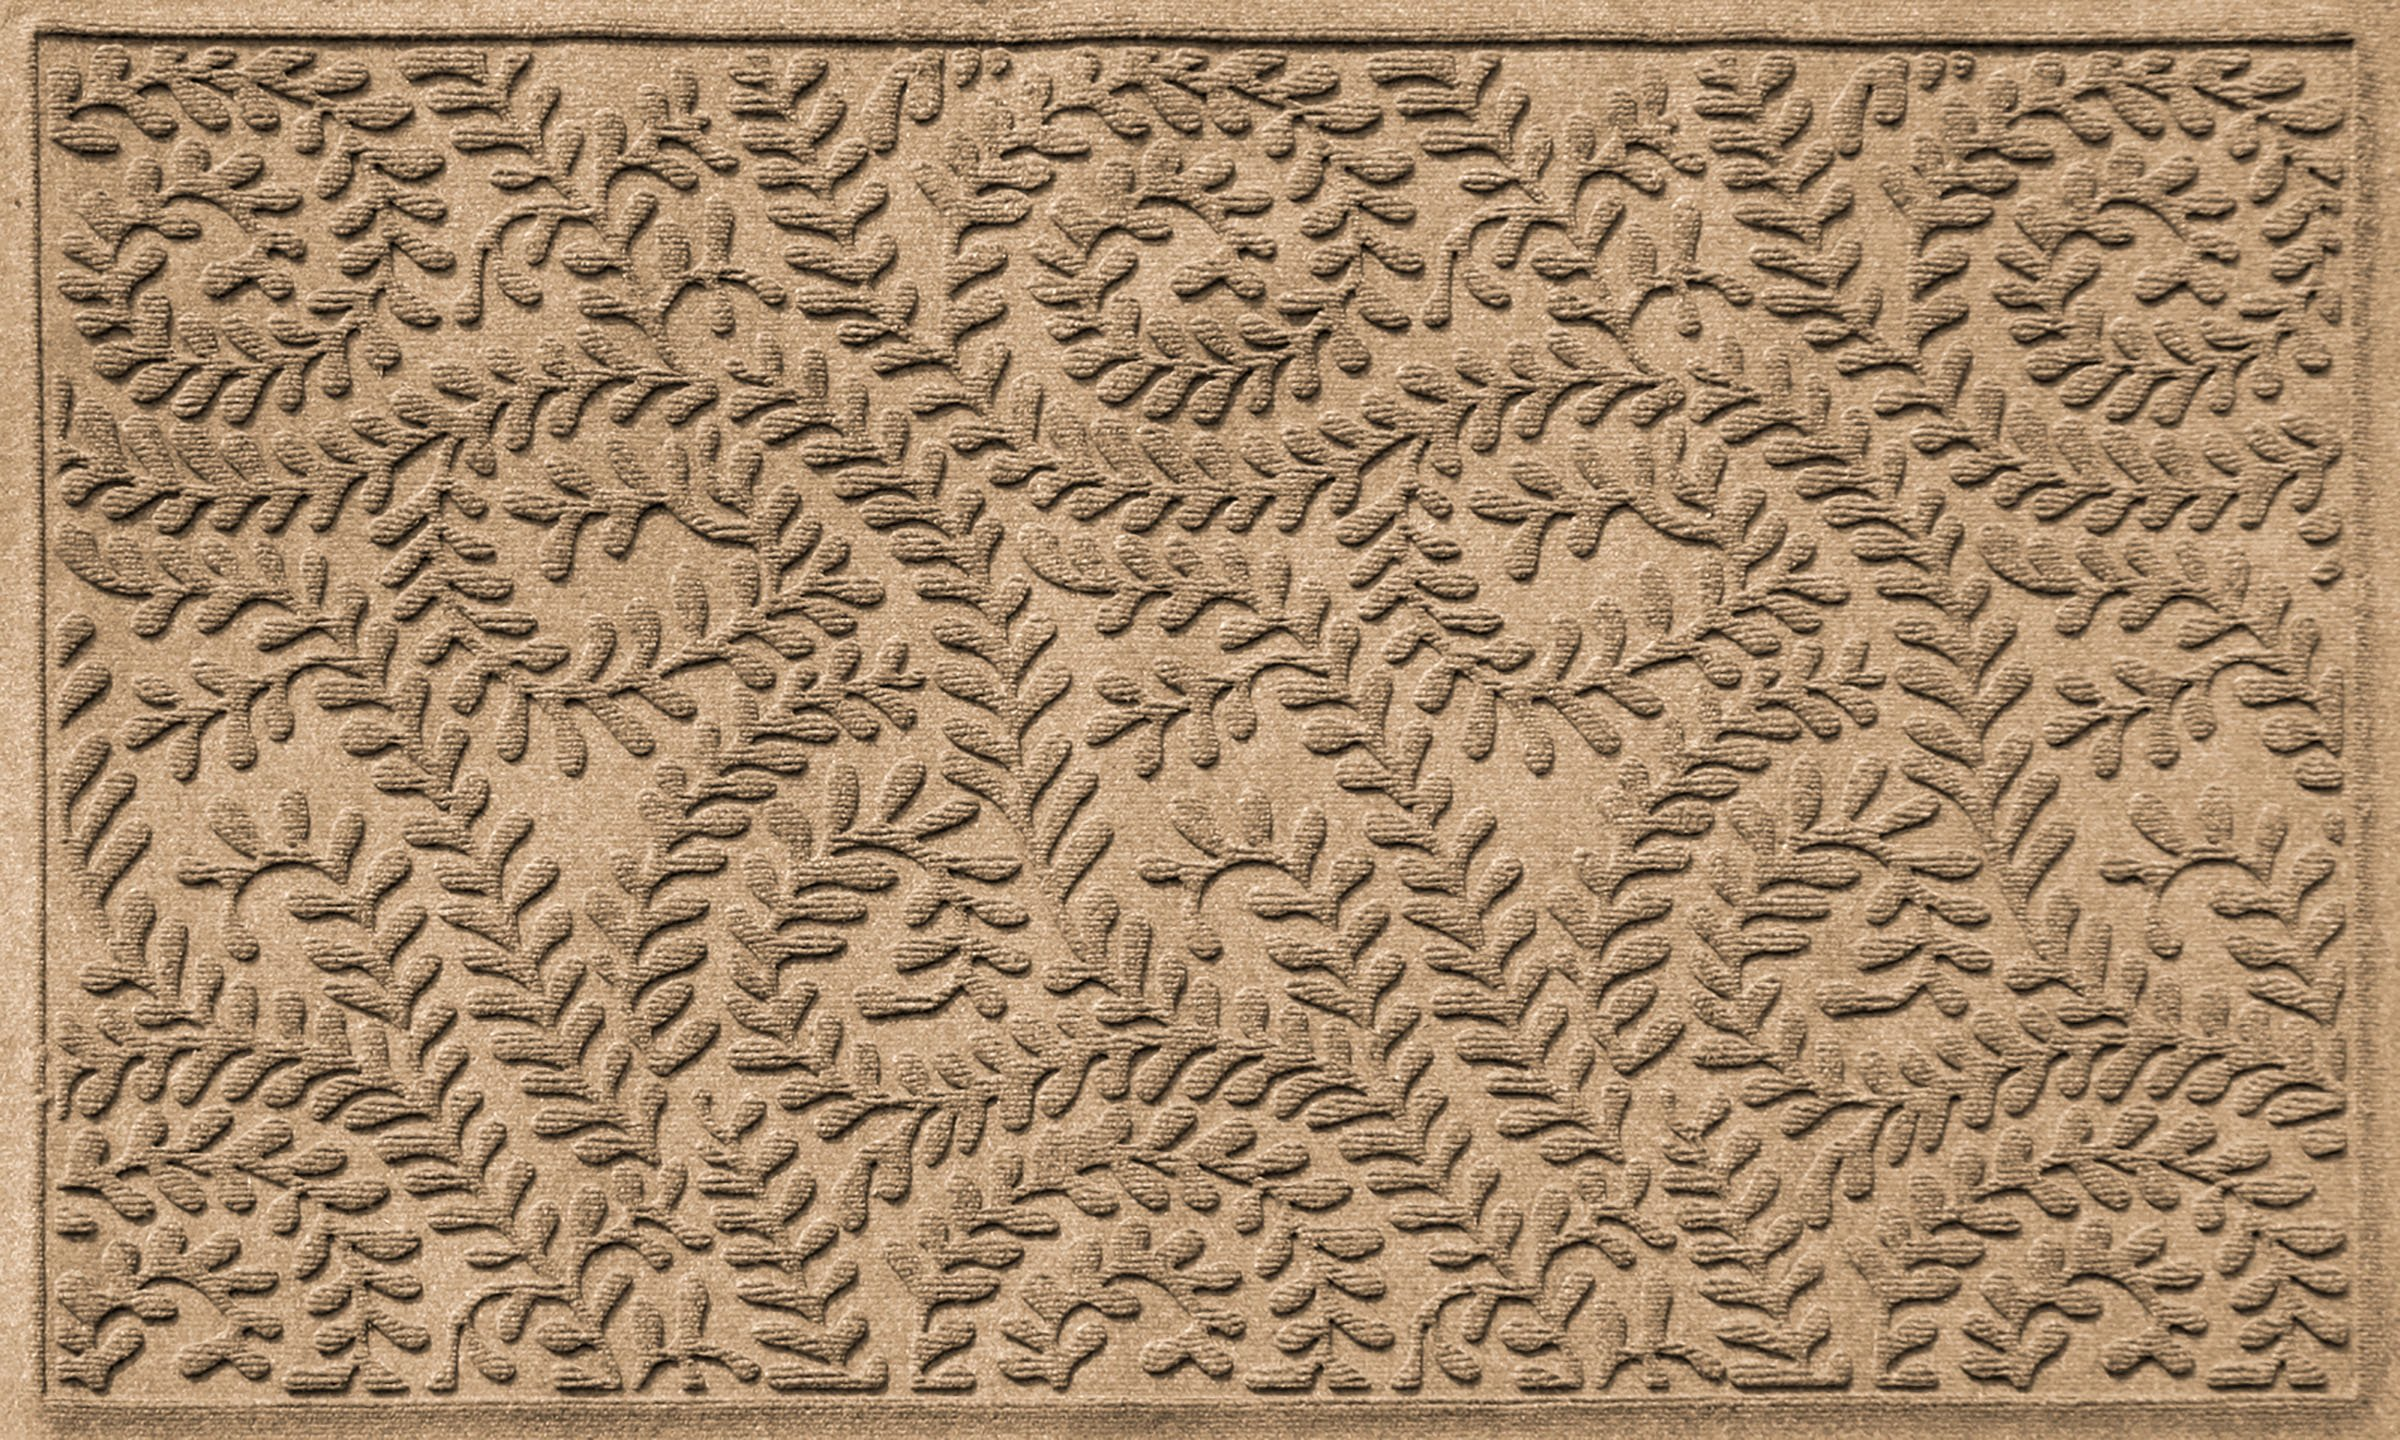 Bungalow Flooring Waterhog Doormat, 3' x 5', Skid Resistant, Easy to Clean, Catches Water and Debris, Boxwood Collection, Khaki by Bungalow Flooring